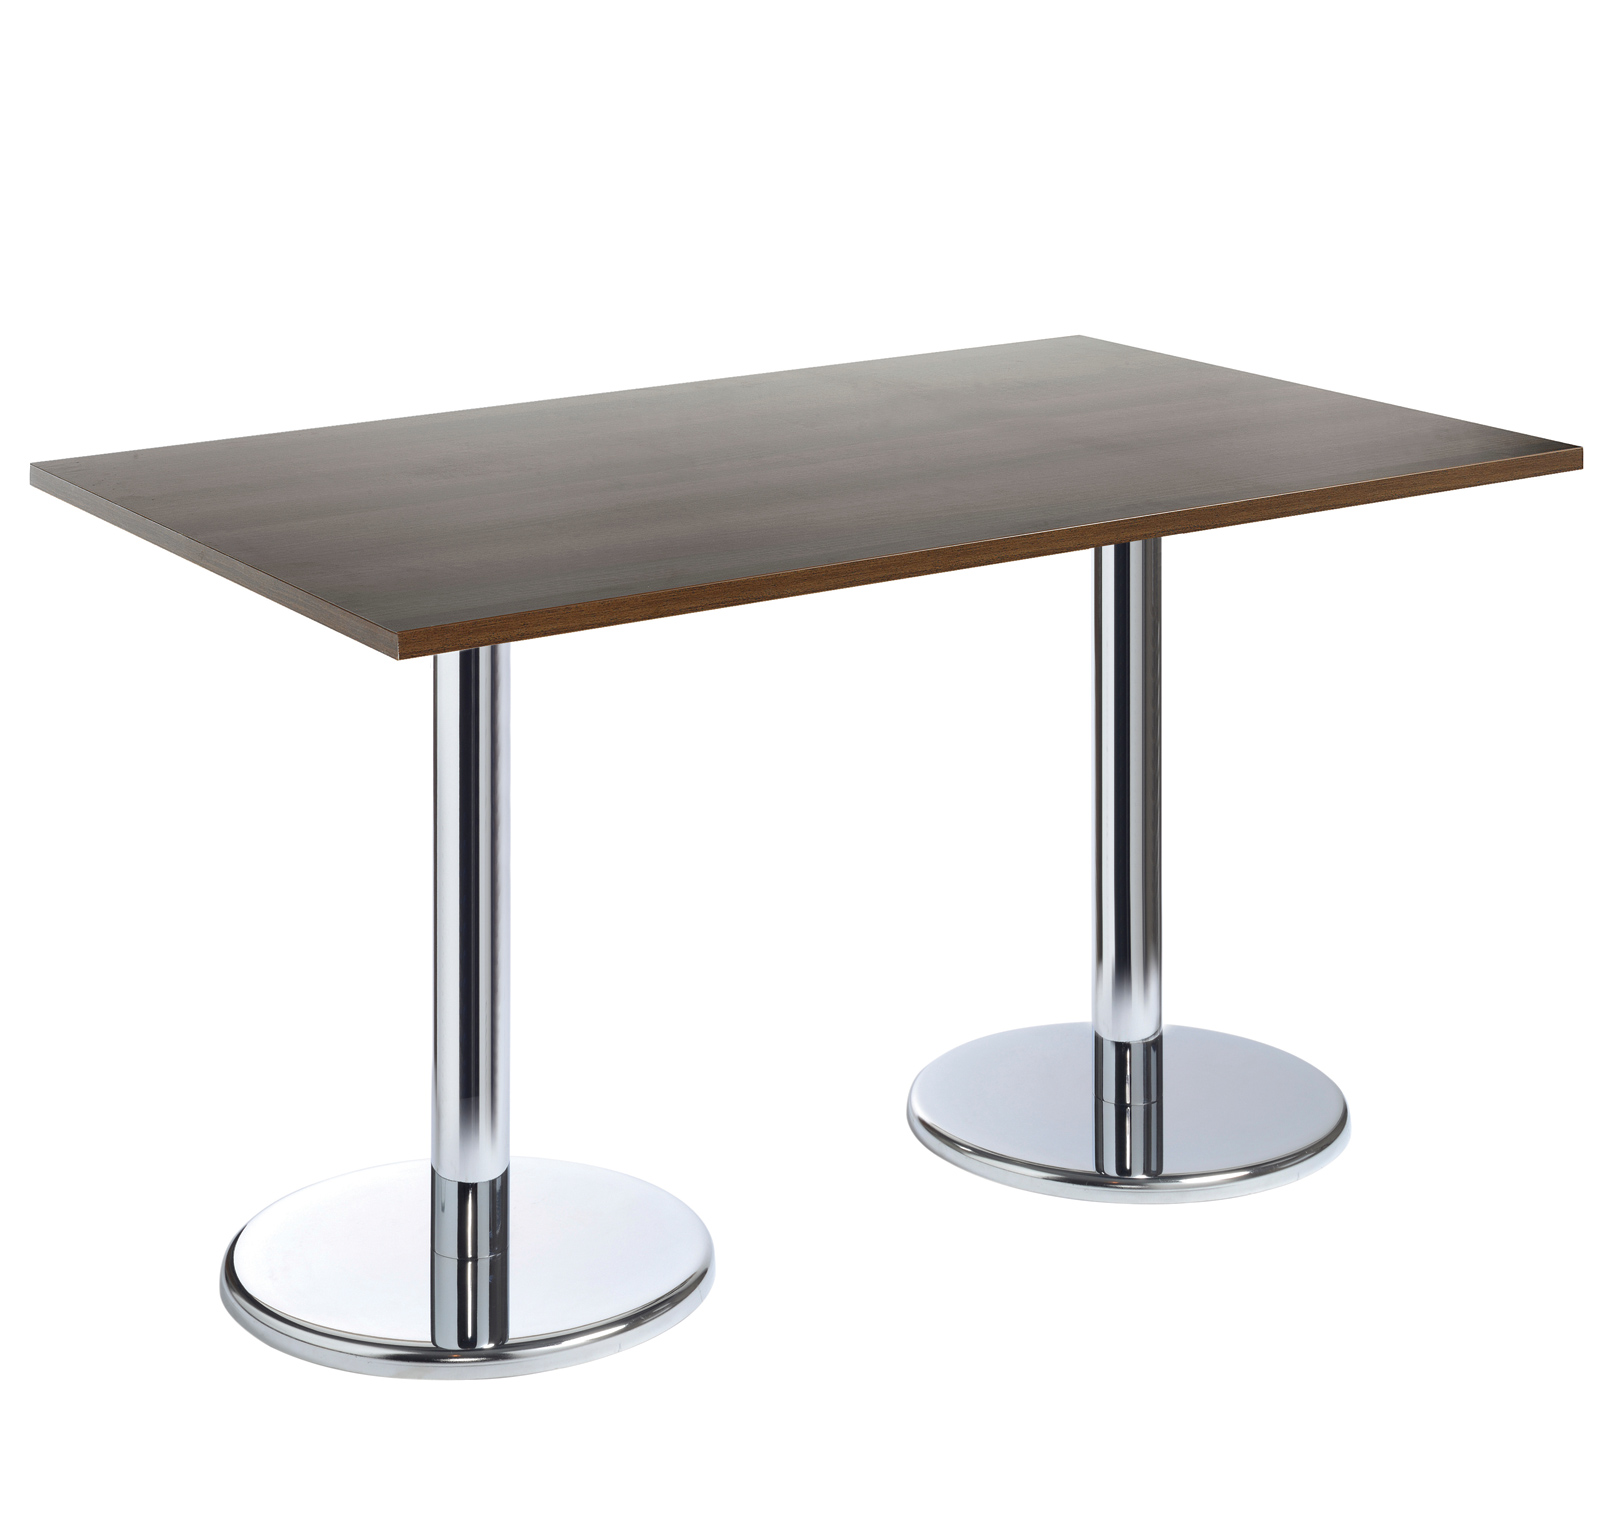 Pisa rectangular table with round chrome base 1600mm x 800mm - walnut